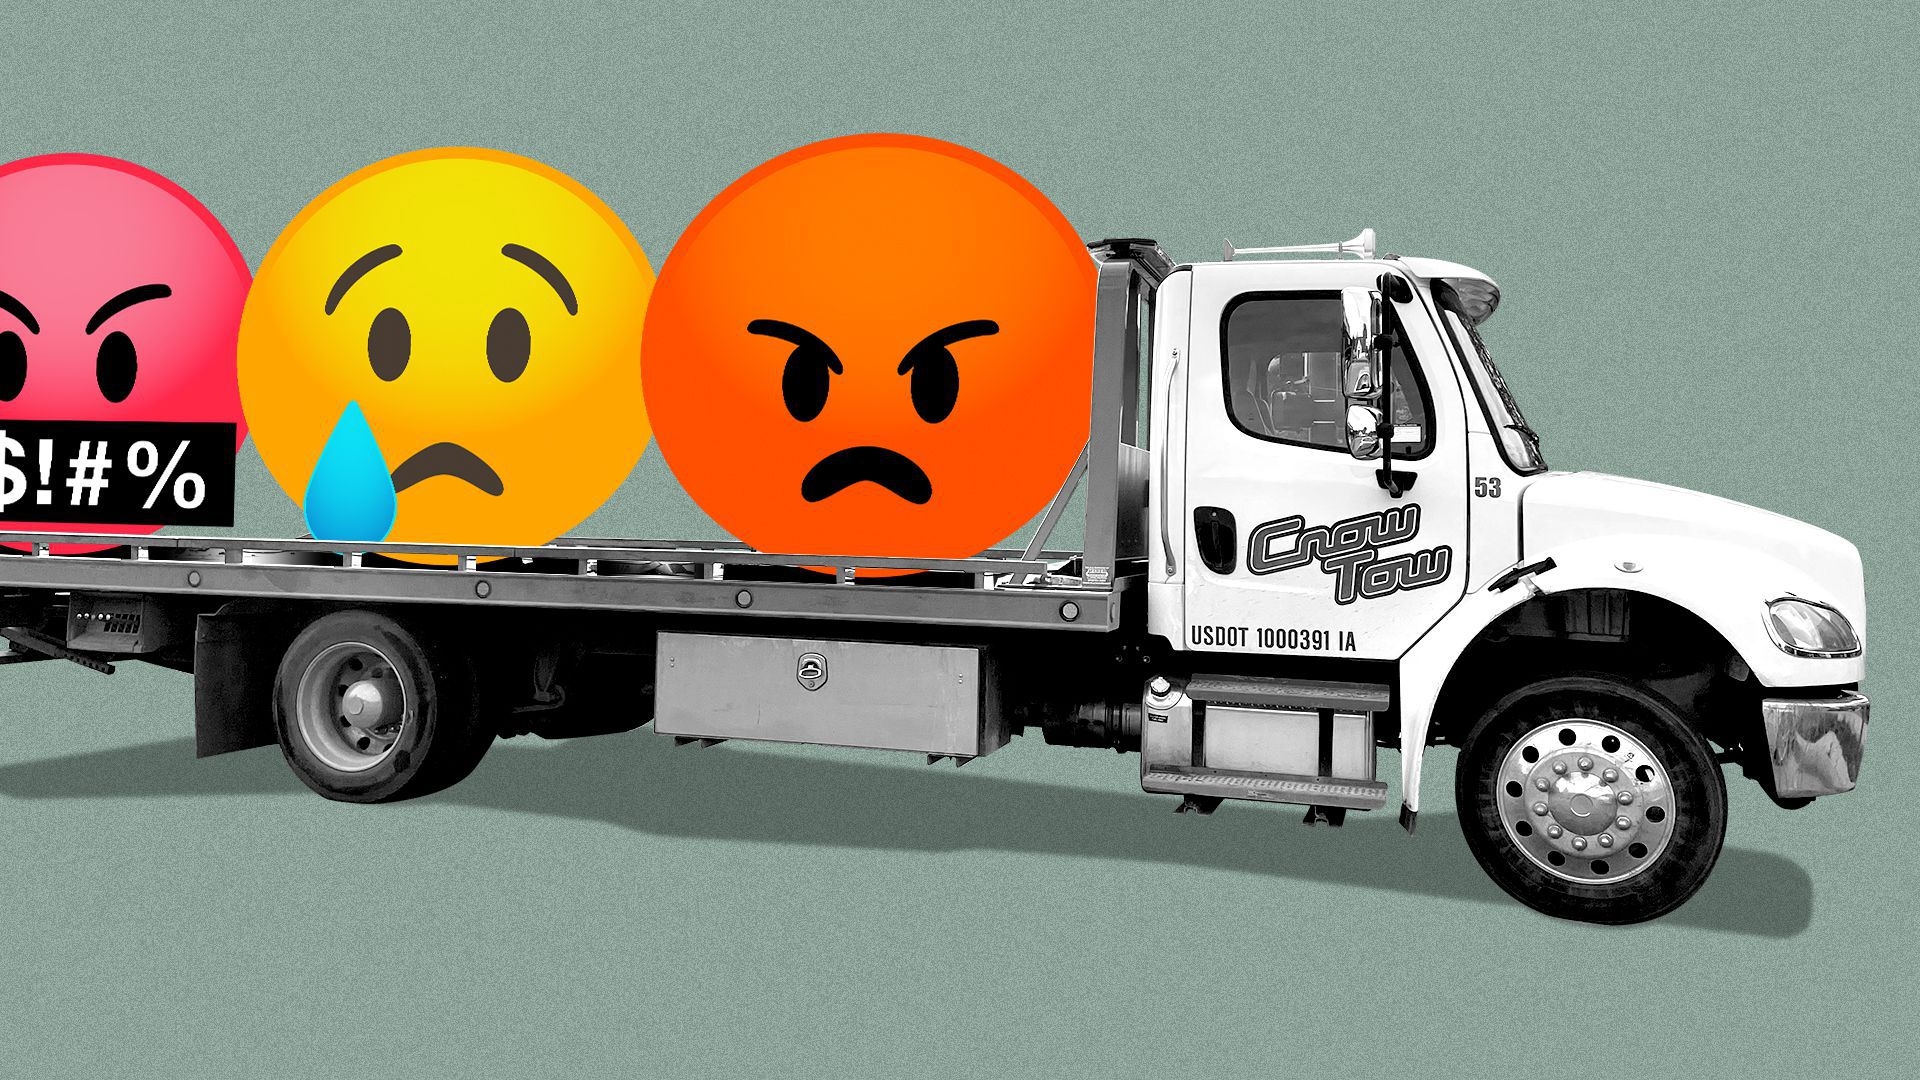 Photo illustration of a Crow Tow tow truck carrying three emojis, one angry, one sad and one swearing.